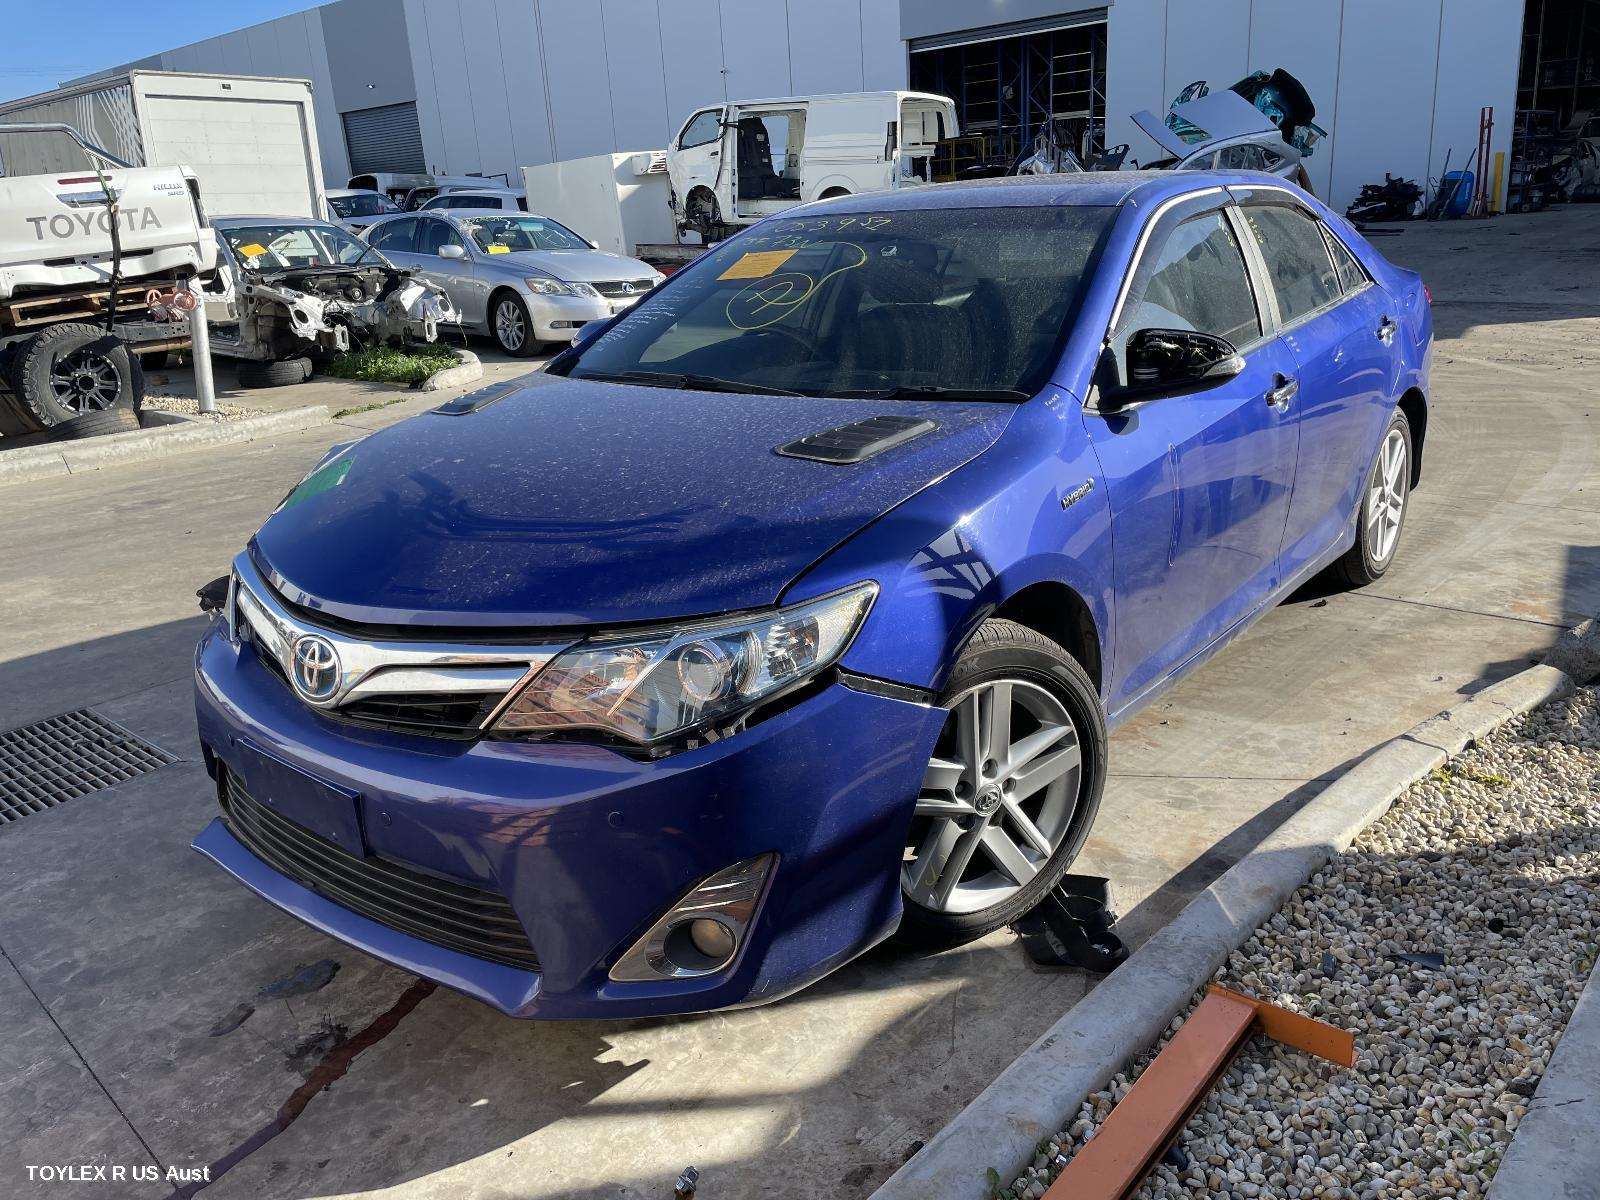 Toyota CAMRY HL TYPE 2AR-FXE 2.5L Engine Automatic FWD Transmission 12/11 - 05/15